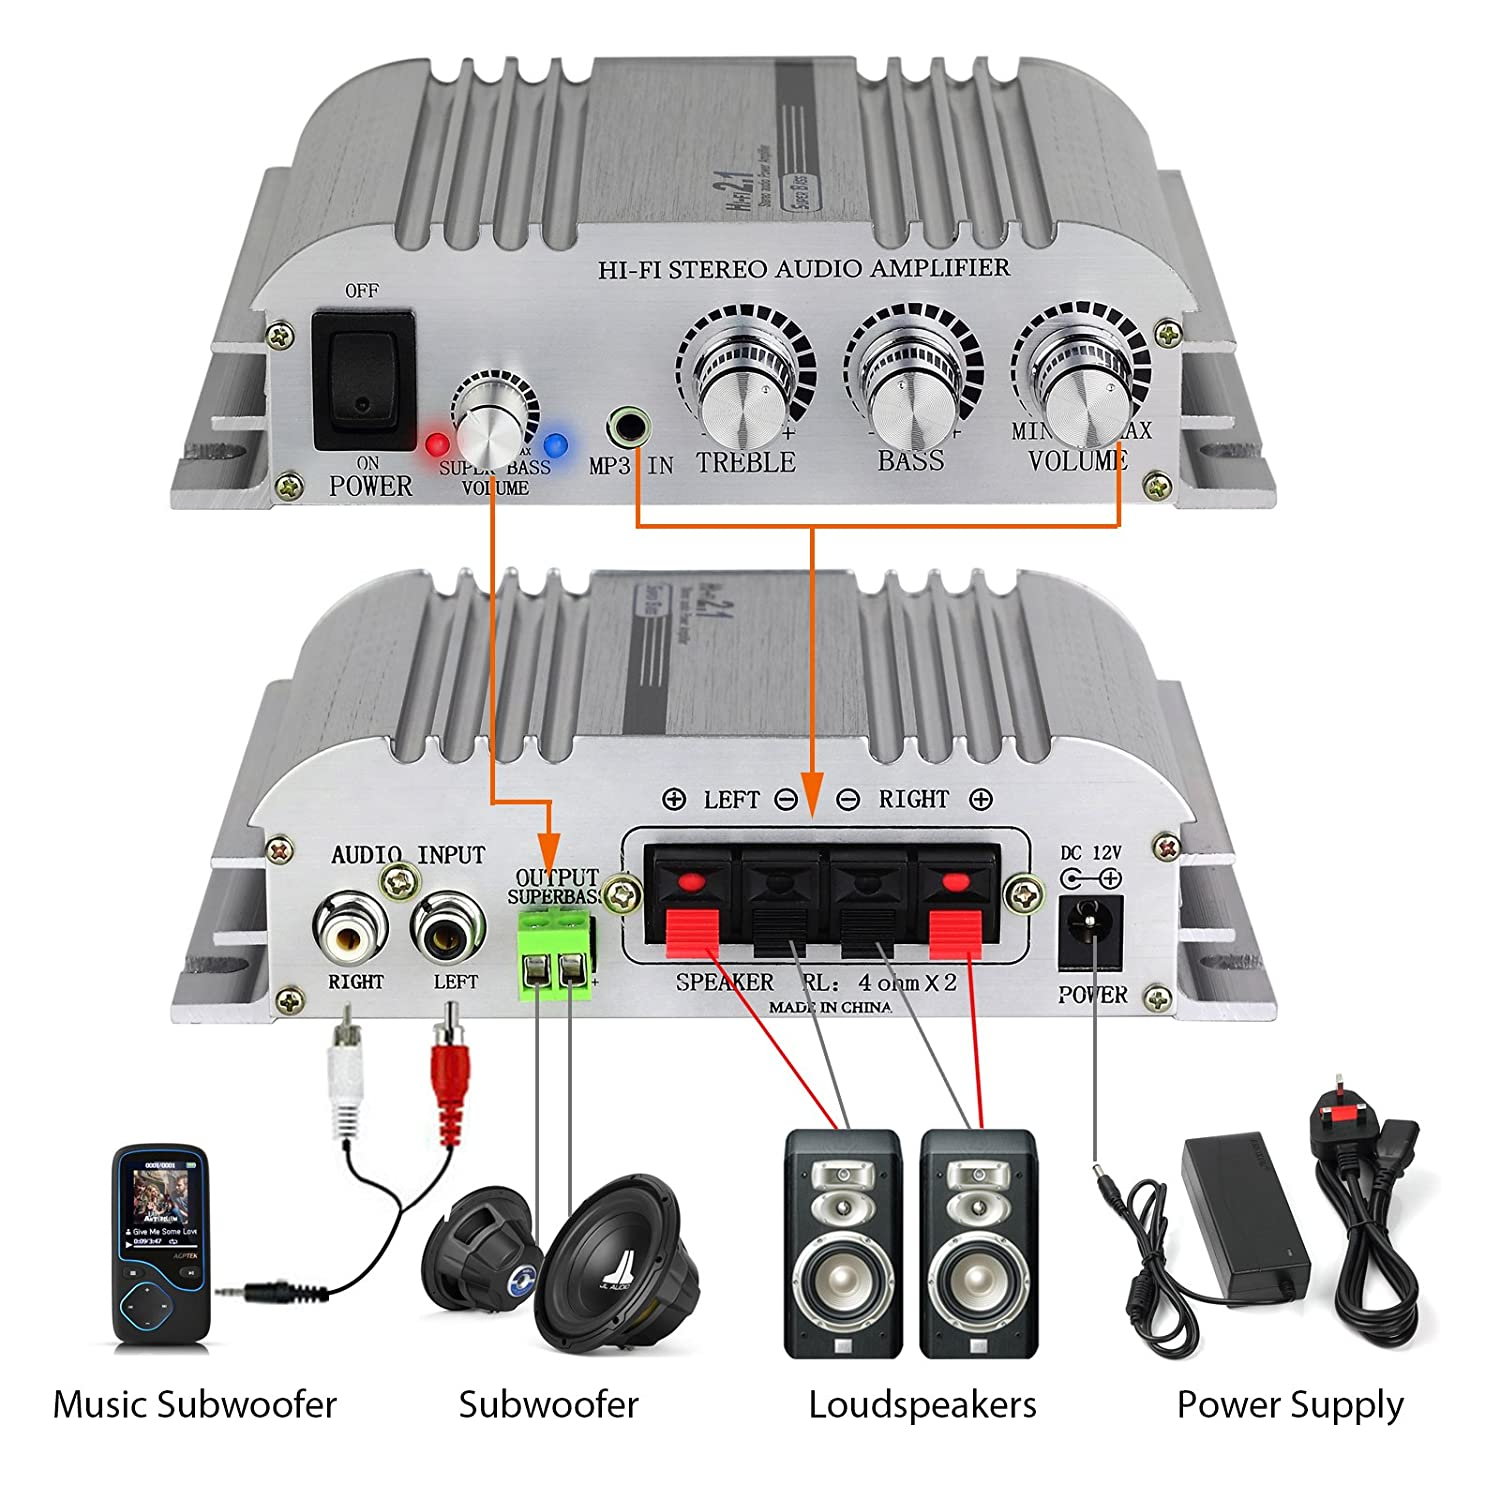 Mini Hi Fi 21 Audio Power Digital Stereo Amplifier Amp Aluminum Block Diagram Of With Volume Control Alloy Solid Case And Easy To Distribute The Heat Super Bass For Cd Mp3 Mp4 Ipod